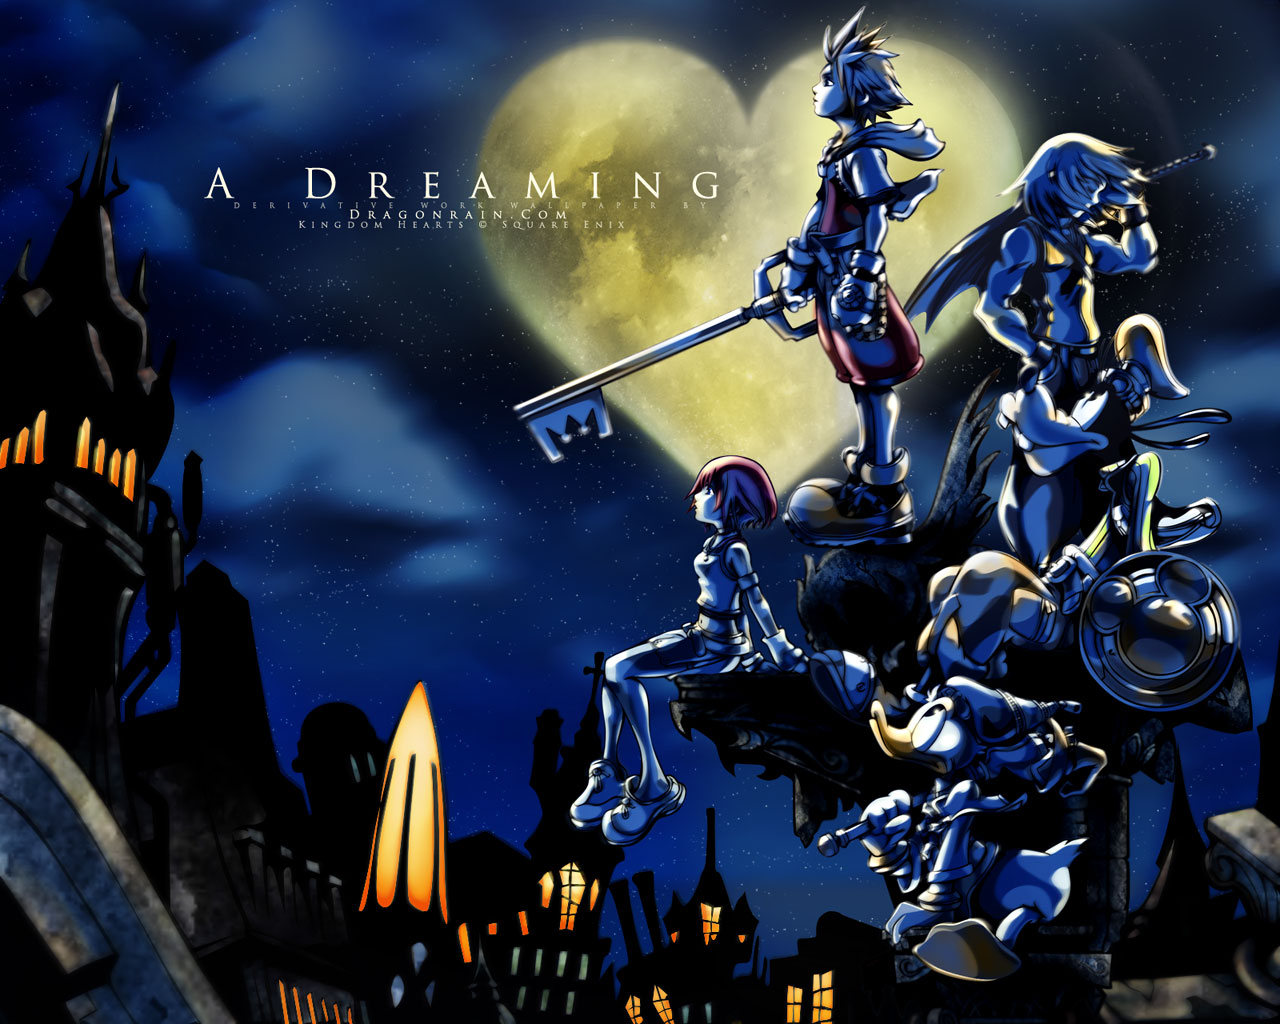 dreaming game wallpaper share this video game background on facebook 1280x1024